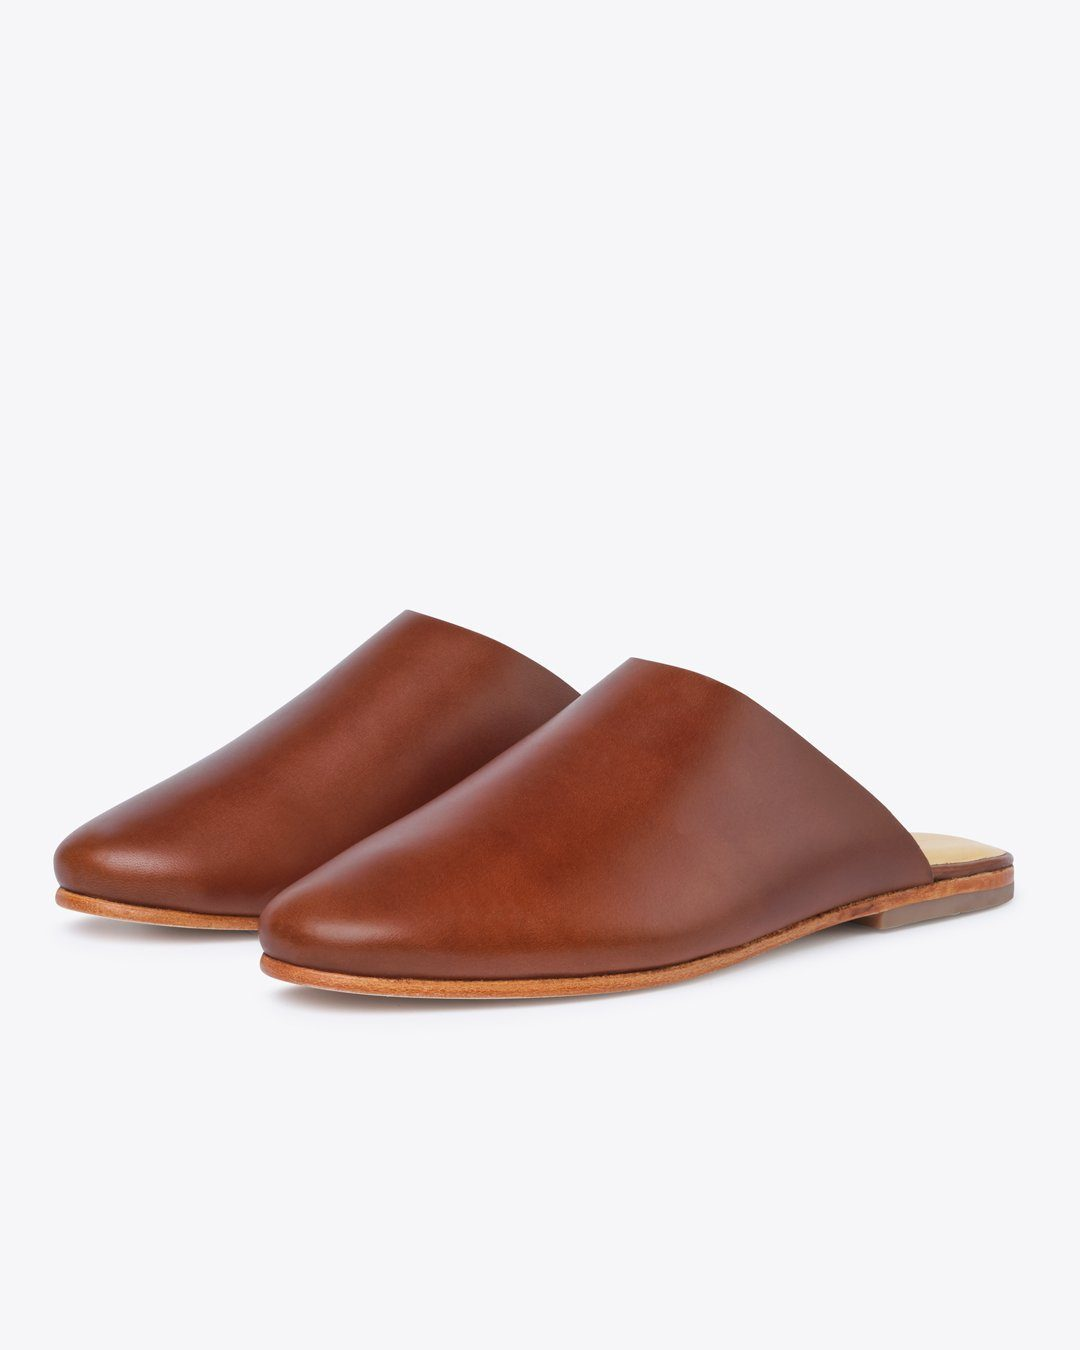 nisolo women's brown leather mules